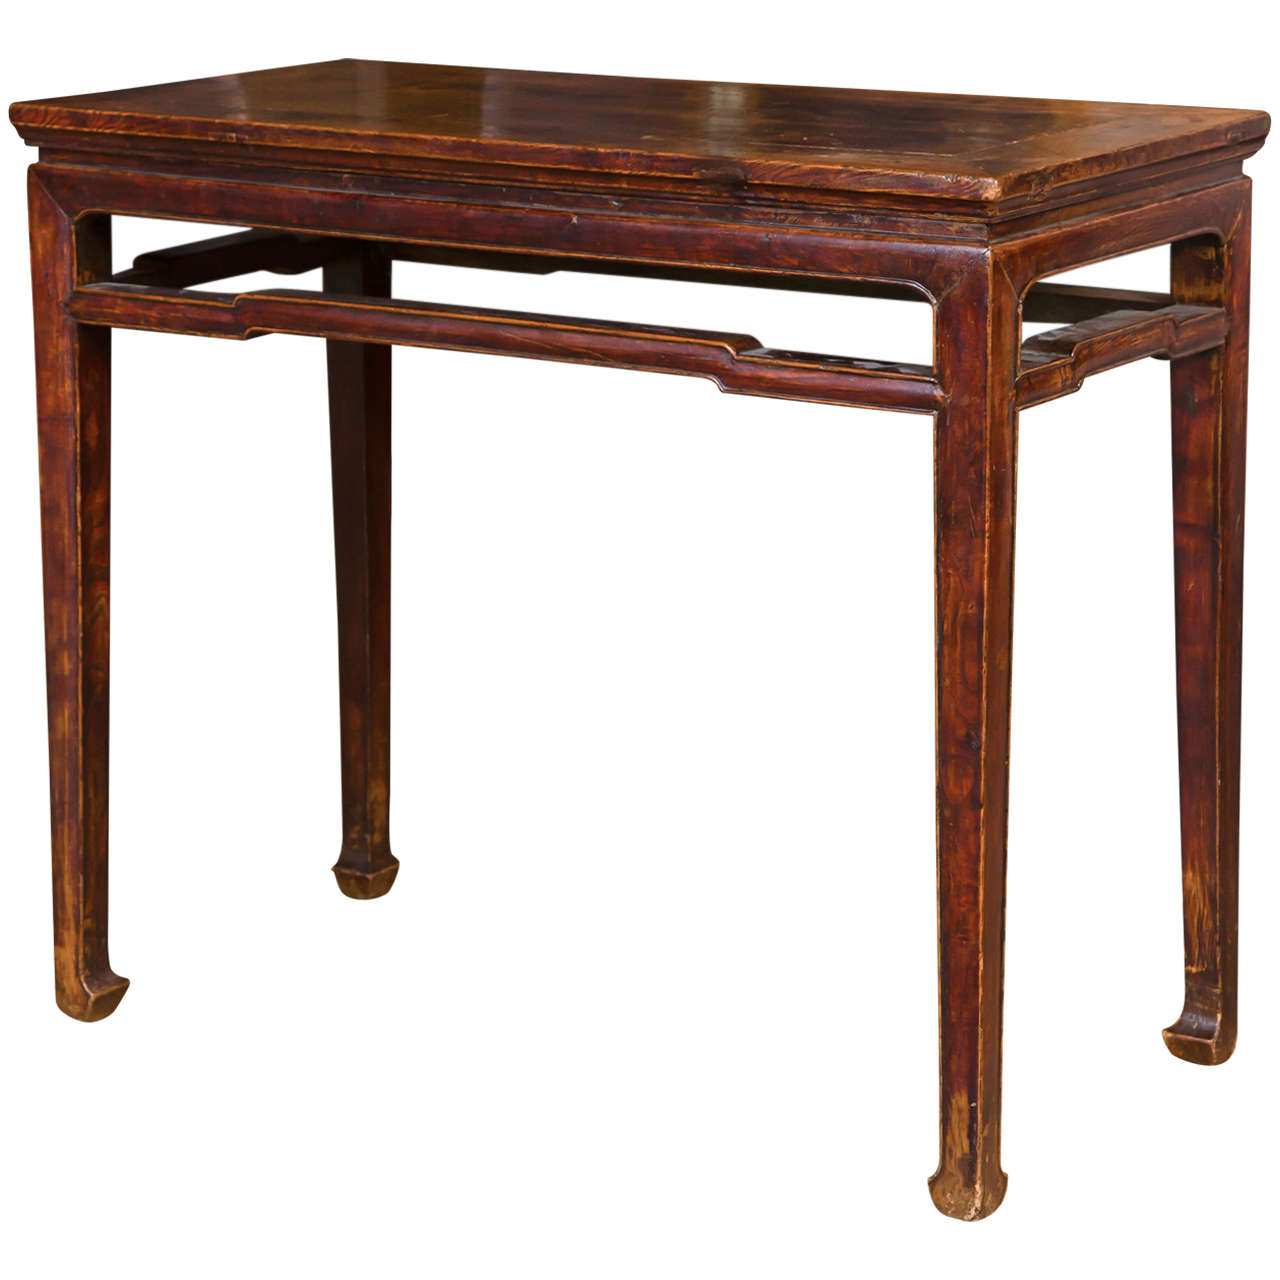 A 19th century Northern elmwood console table of simple strong lines.  The rectangular top over molded frieze and stretchers, square legs ending on horse hoof feet.